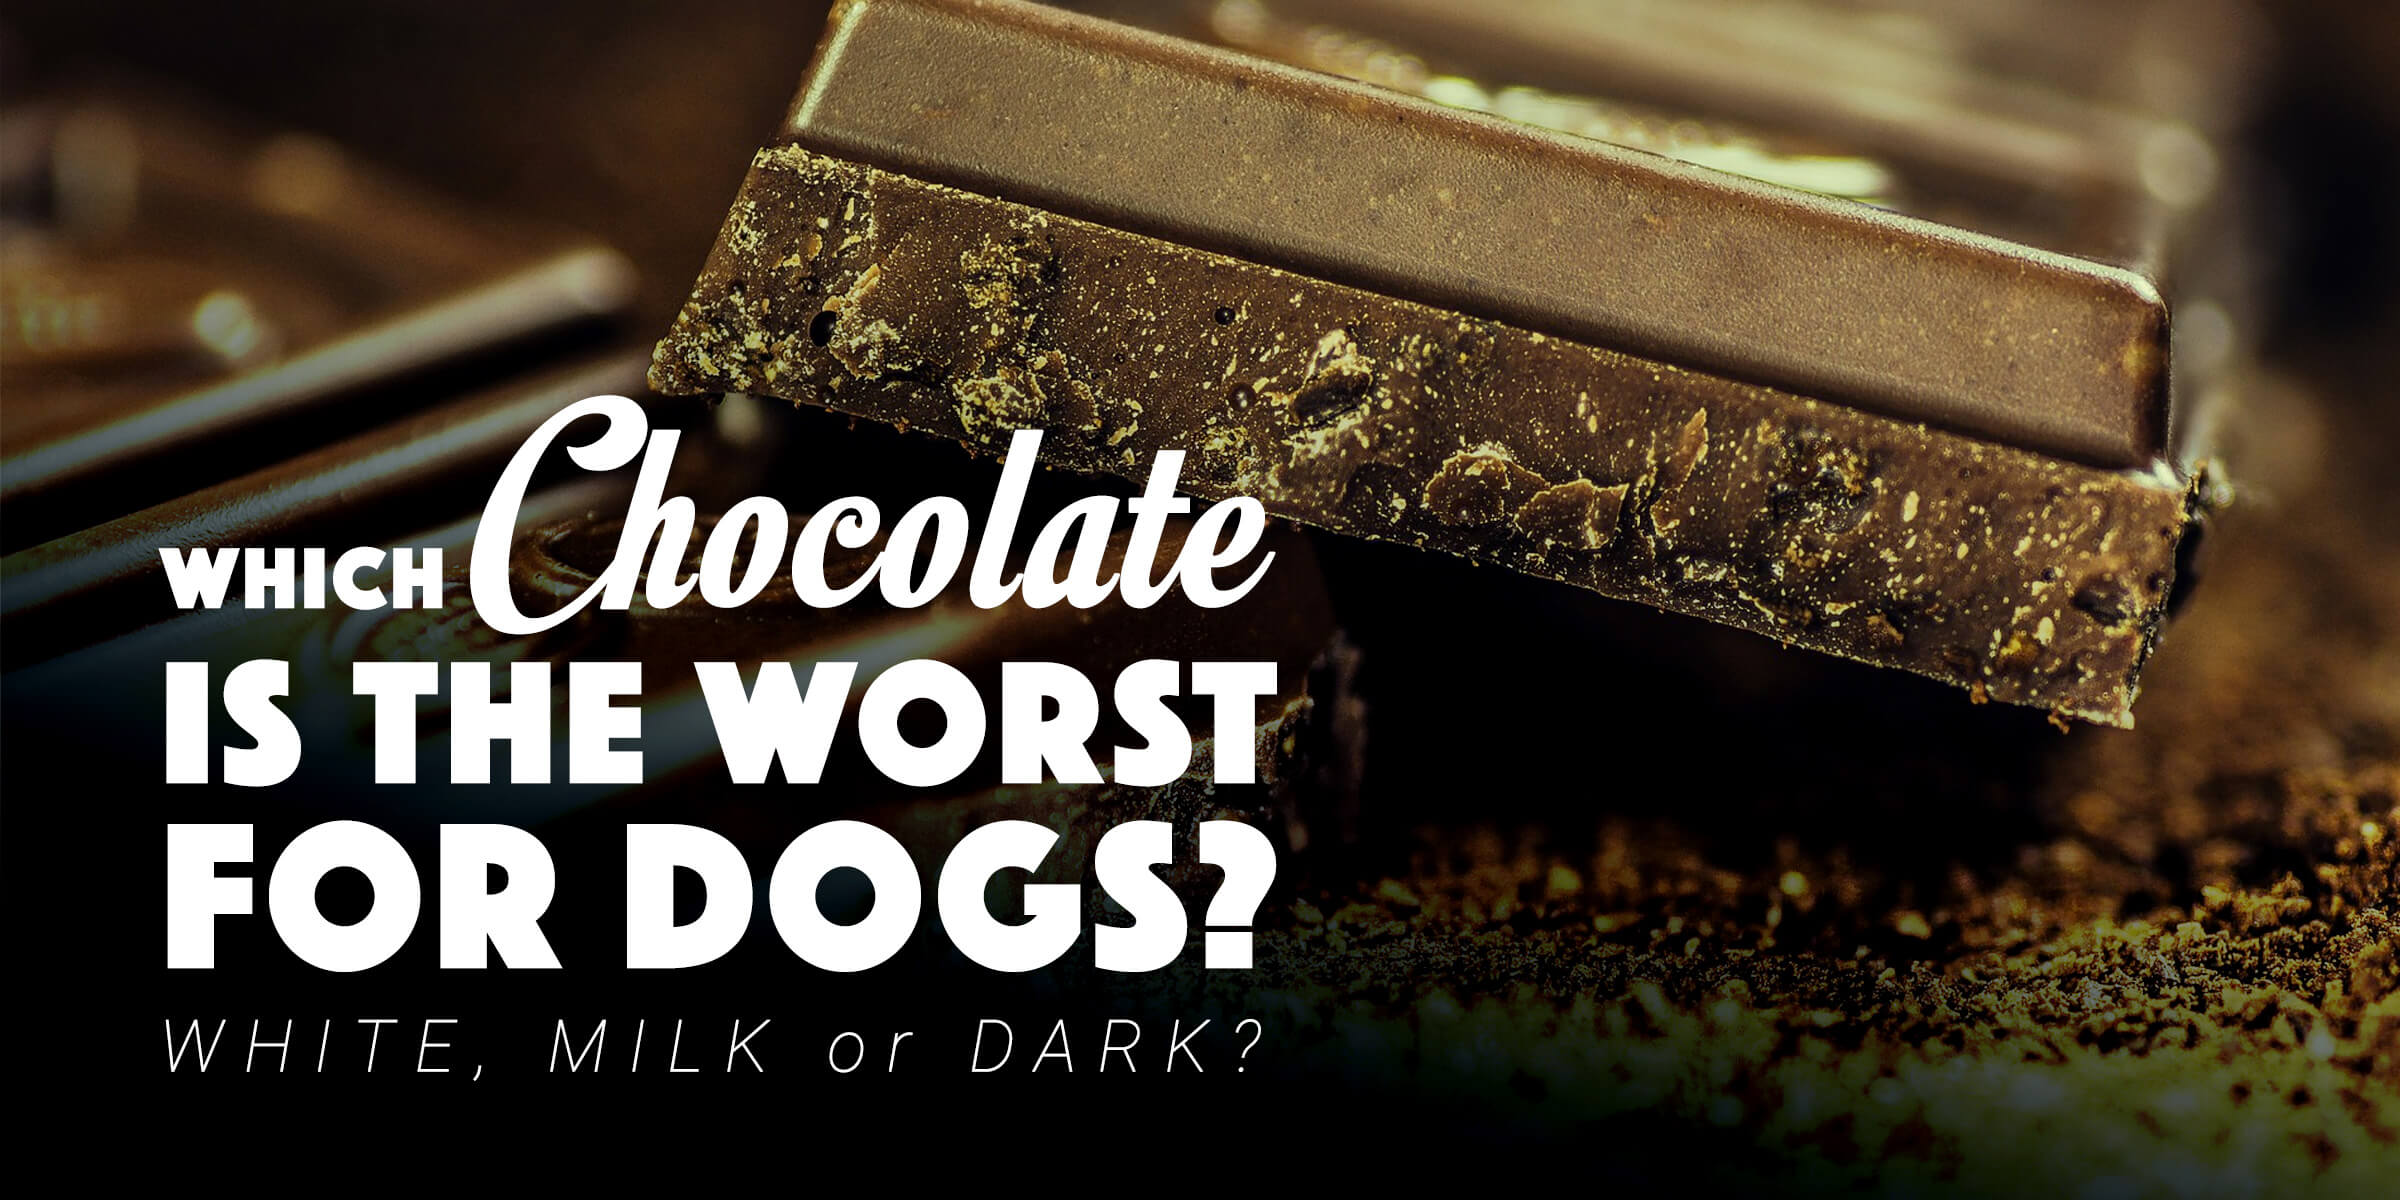 Is Dark Chocolate Or Milk Chocolate Worse For Dogs